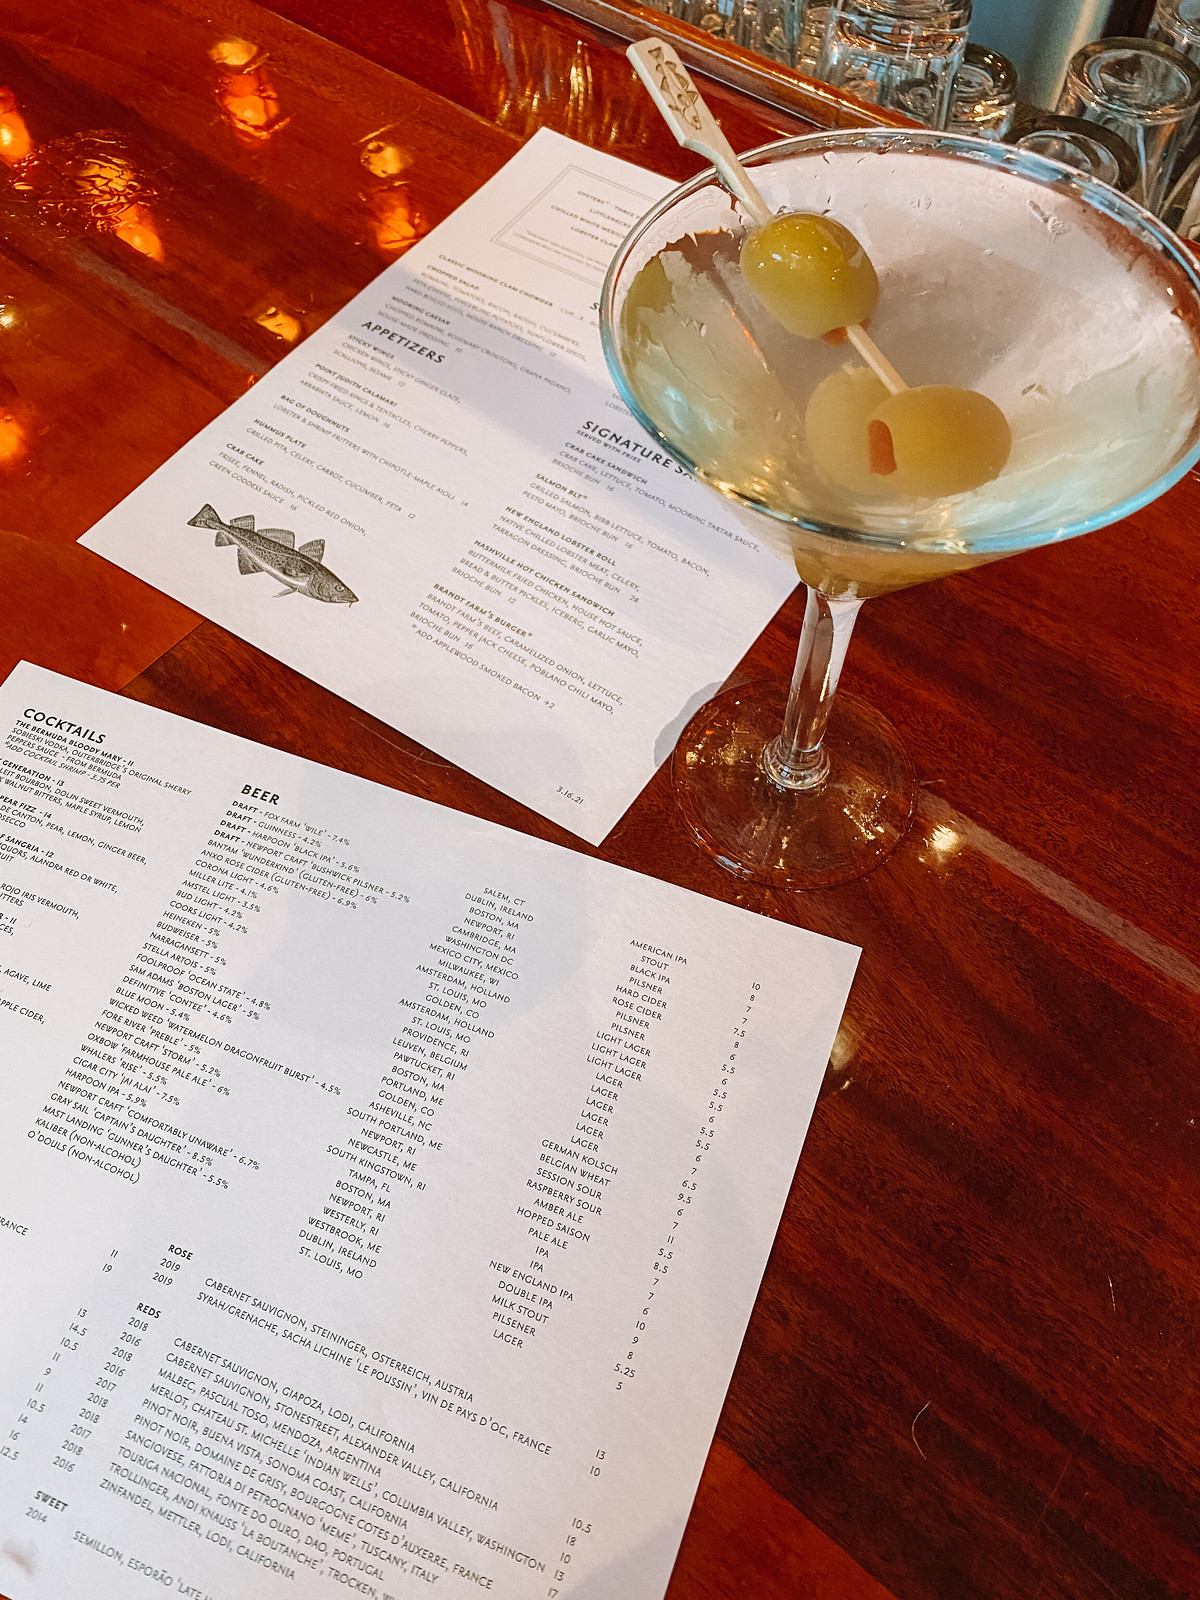 The Mooring Dirty Martinis | Where to Eat in Newport | 48 Hours in Newport Itinerary | A First Timer's Guide to 2 Days in Newport Rhode Island | What to do in Newport | Newport Travel Guide | Best Things to do in Newport | Best Places to Visit in Newport